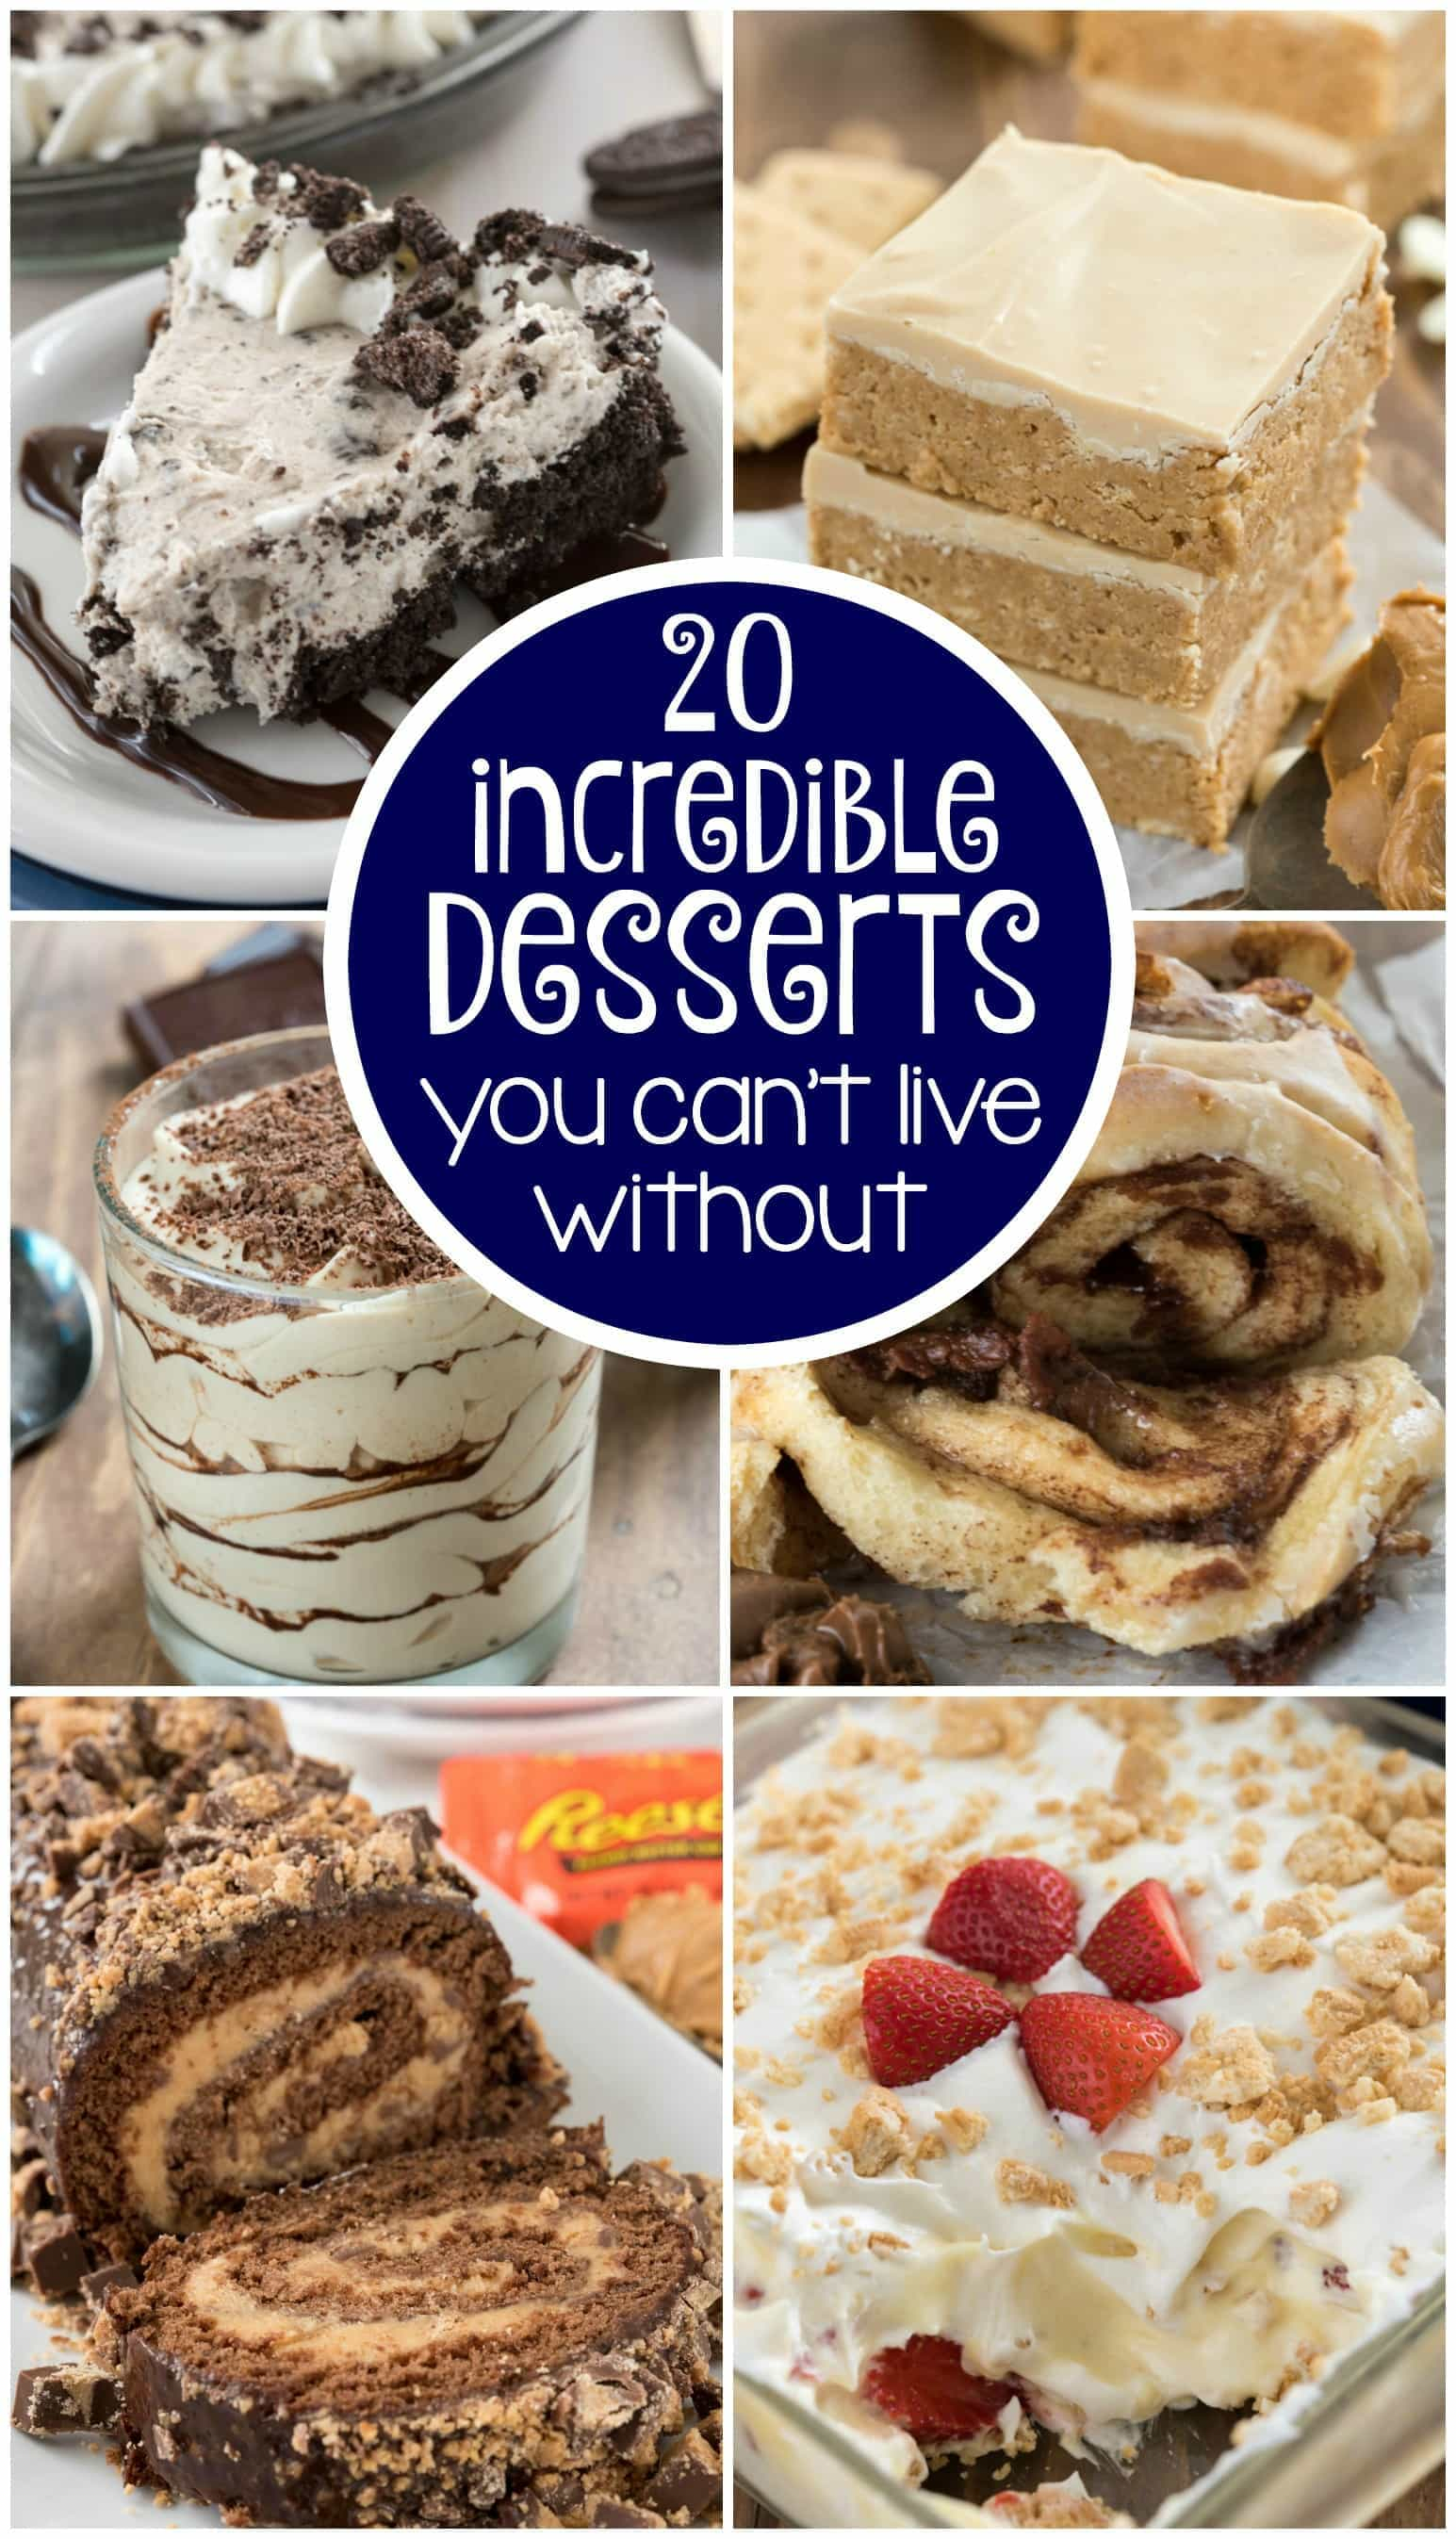 20 Incredible Dessert Recipes You Cant Live without!